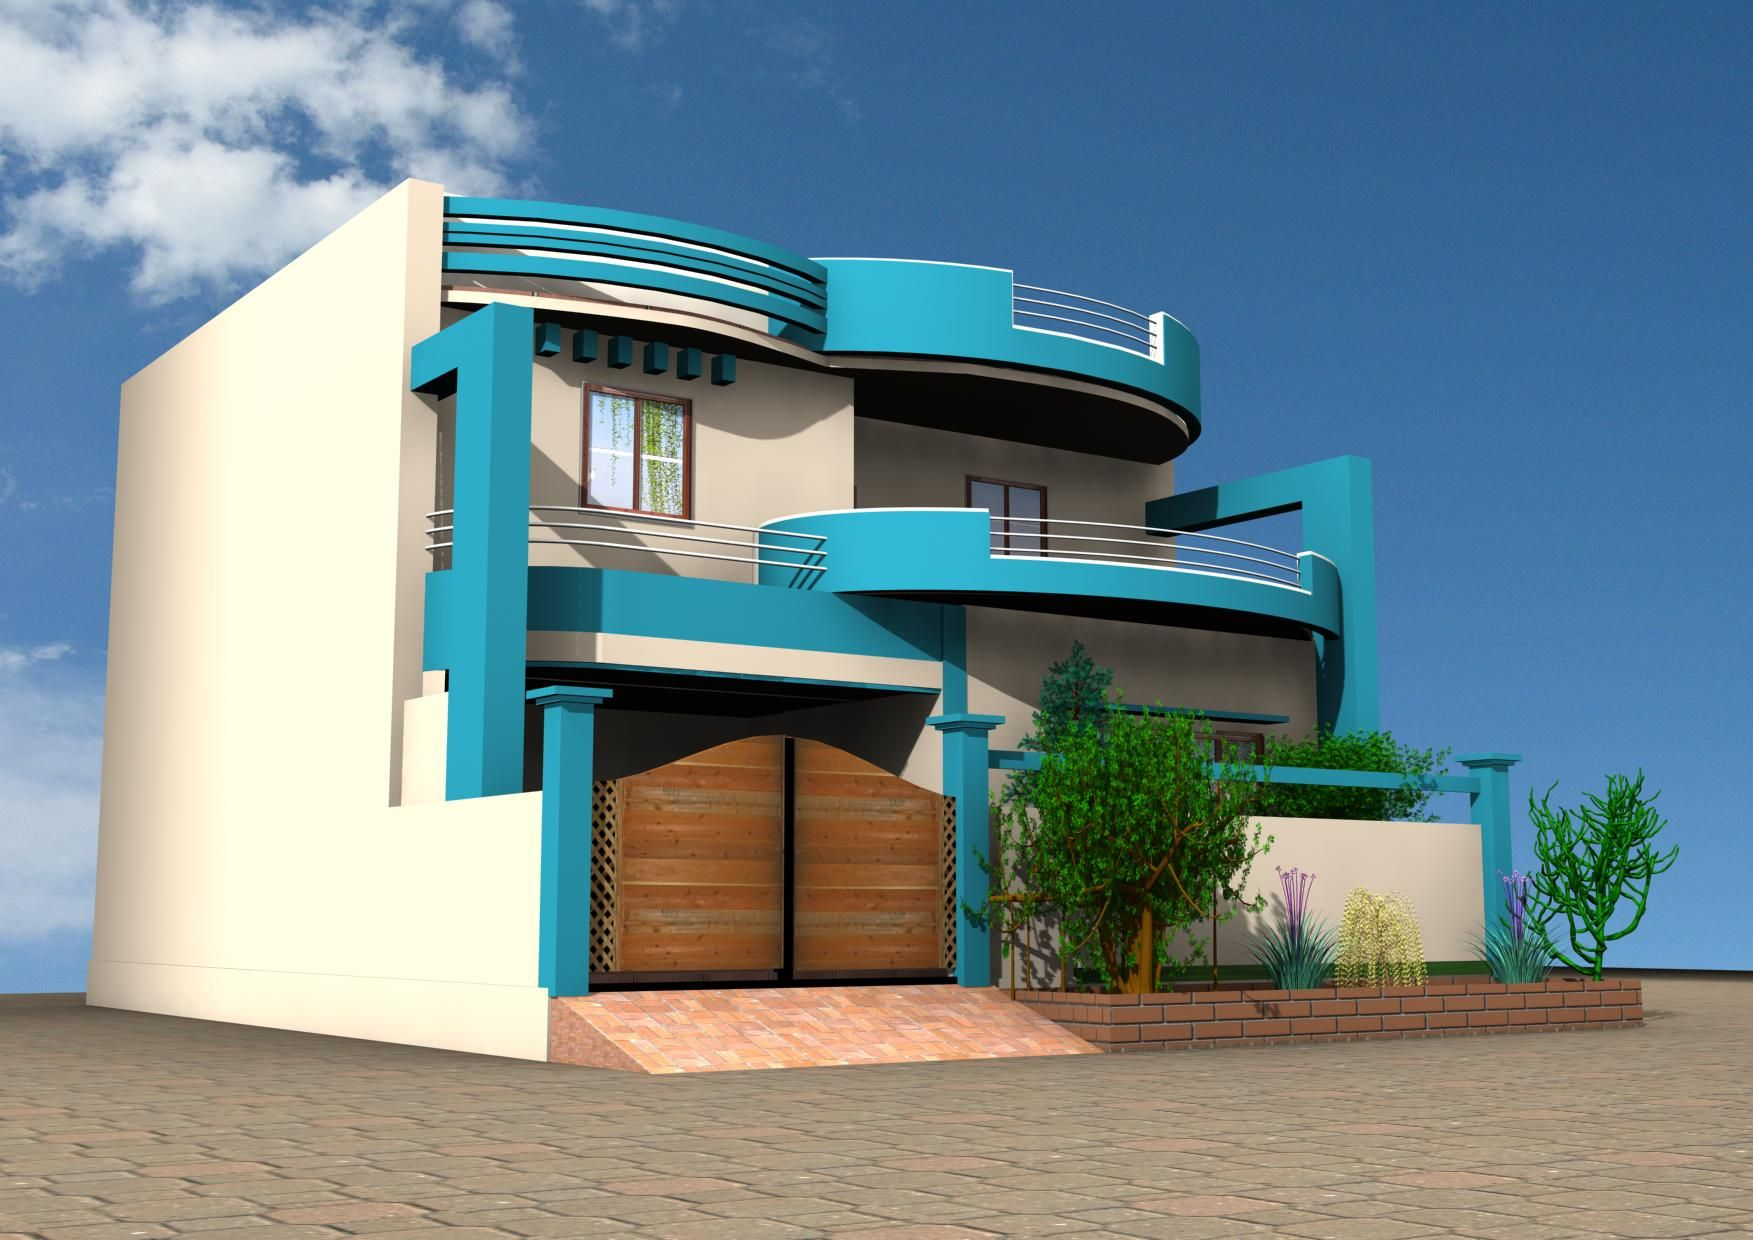 3d home design images hd 1080p for Architecture programs free